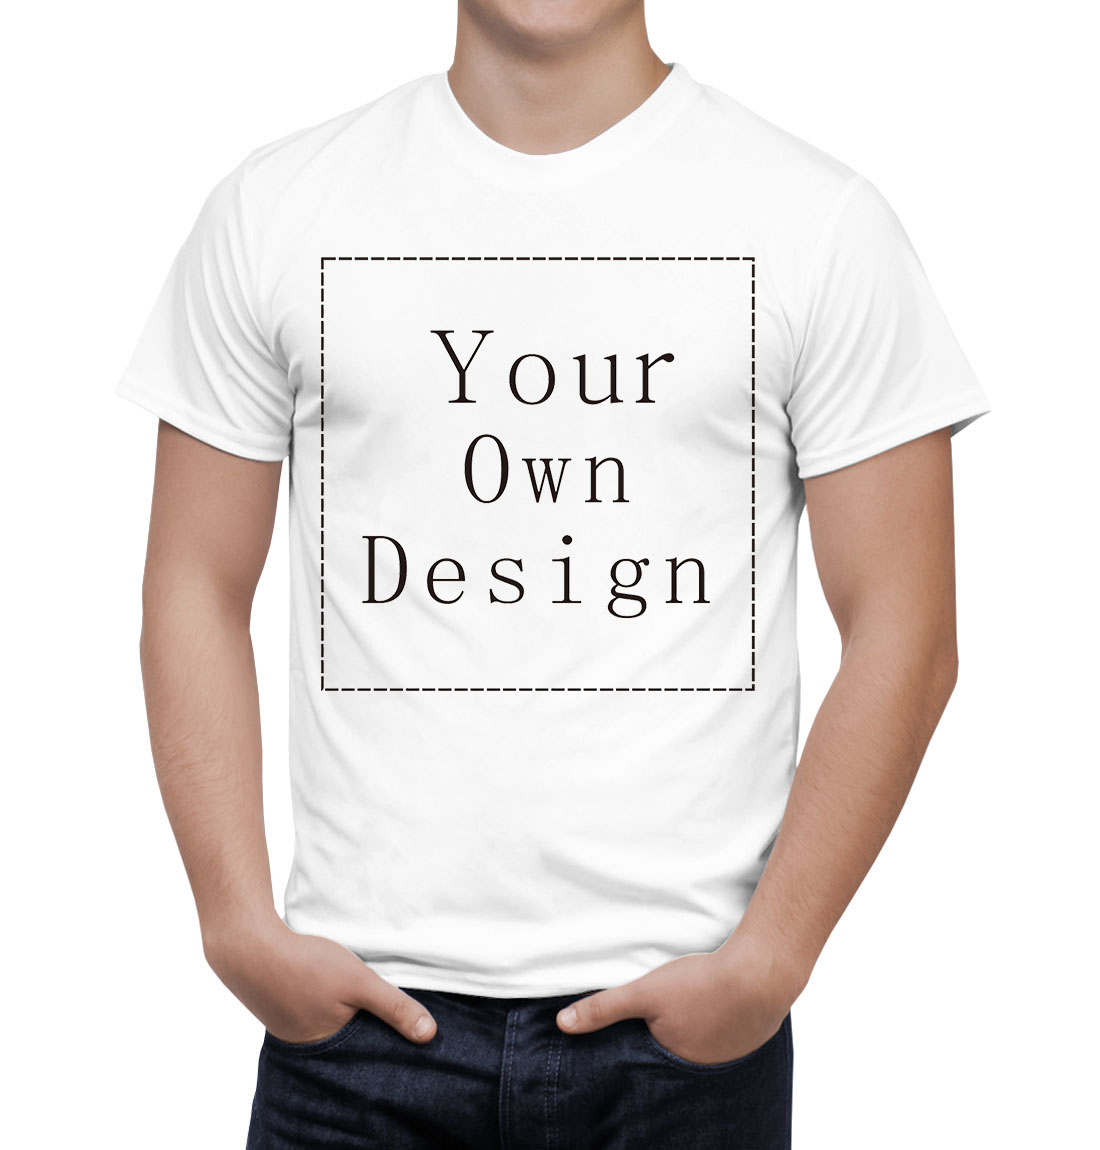 Design your own t shirt cheap uk - Customized Men S T Shirt Print Your Own Design High Quality Fast Ship China Mainland